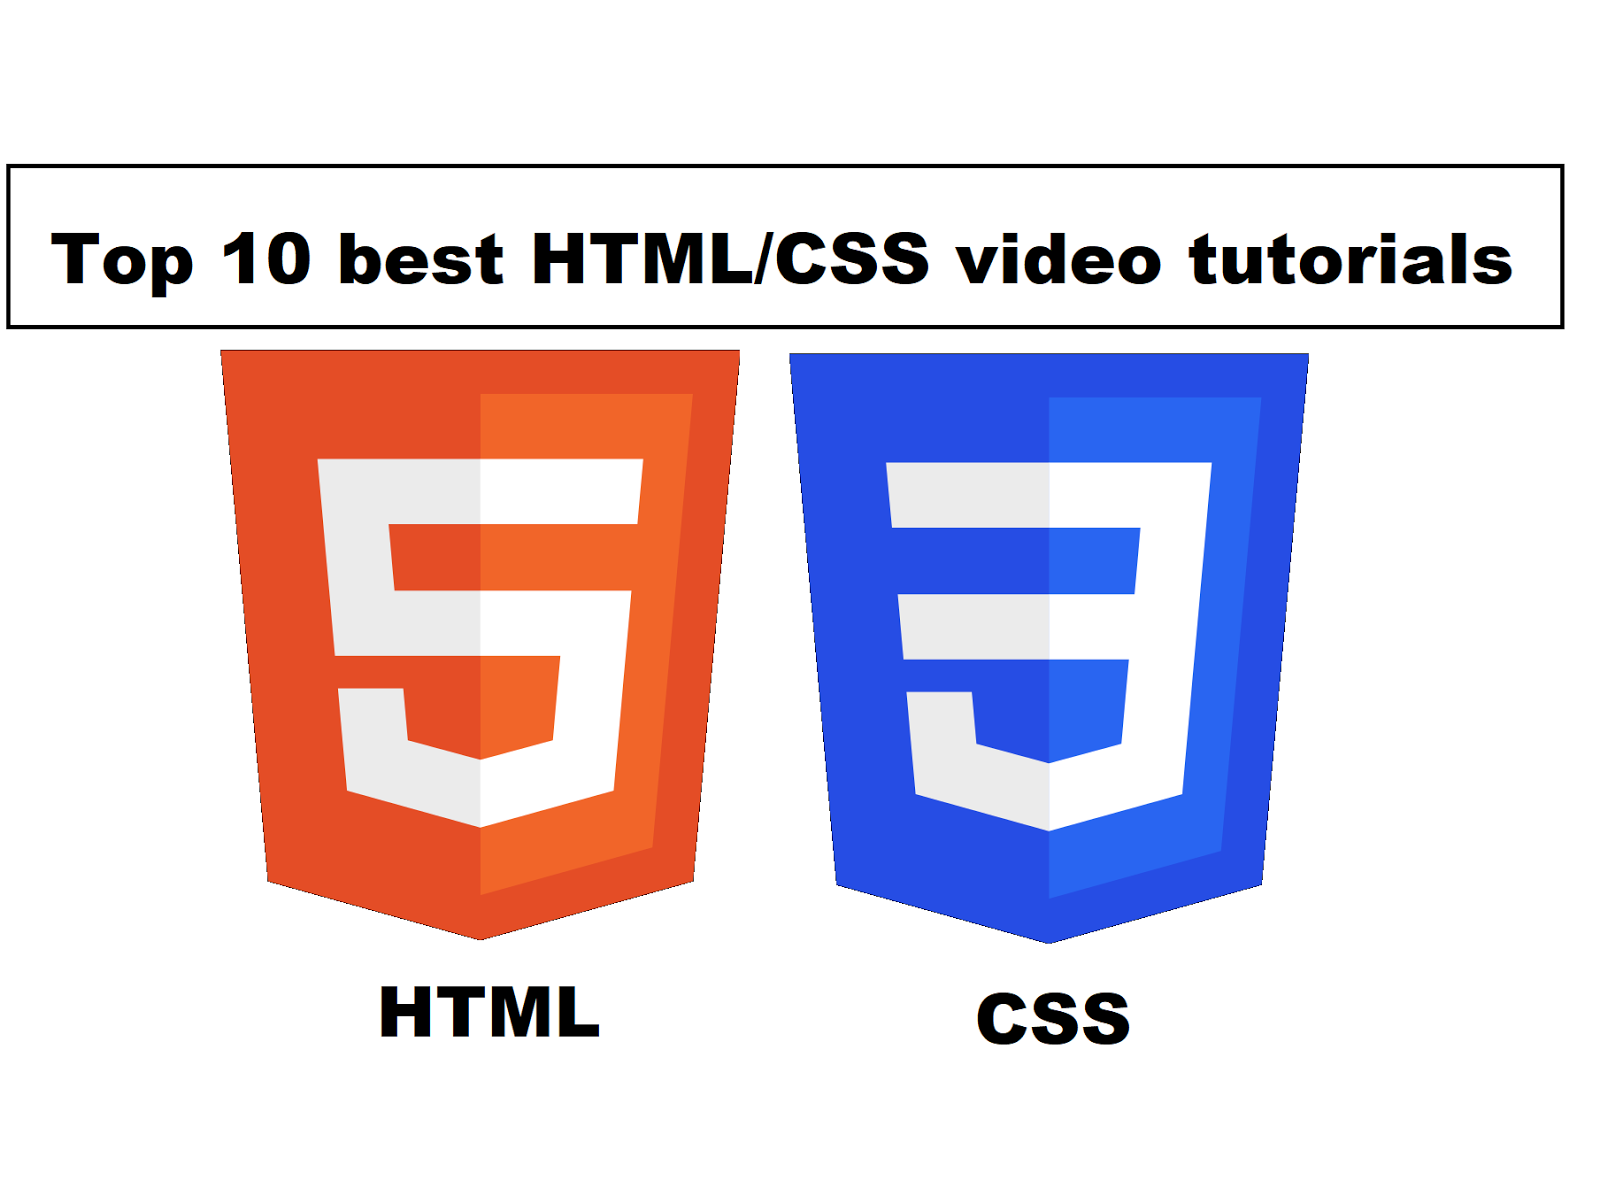 Top 10 best htmlcss video tutorials learn htmlcss step by step build responsive real world websites with html5 and css3 baditri Gallery